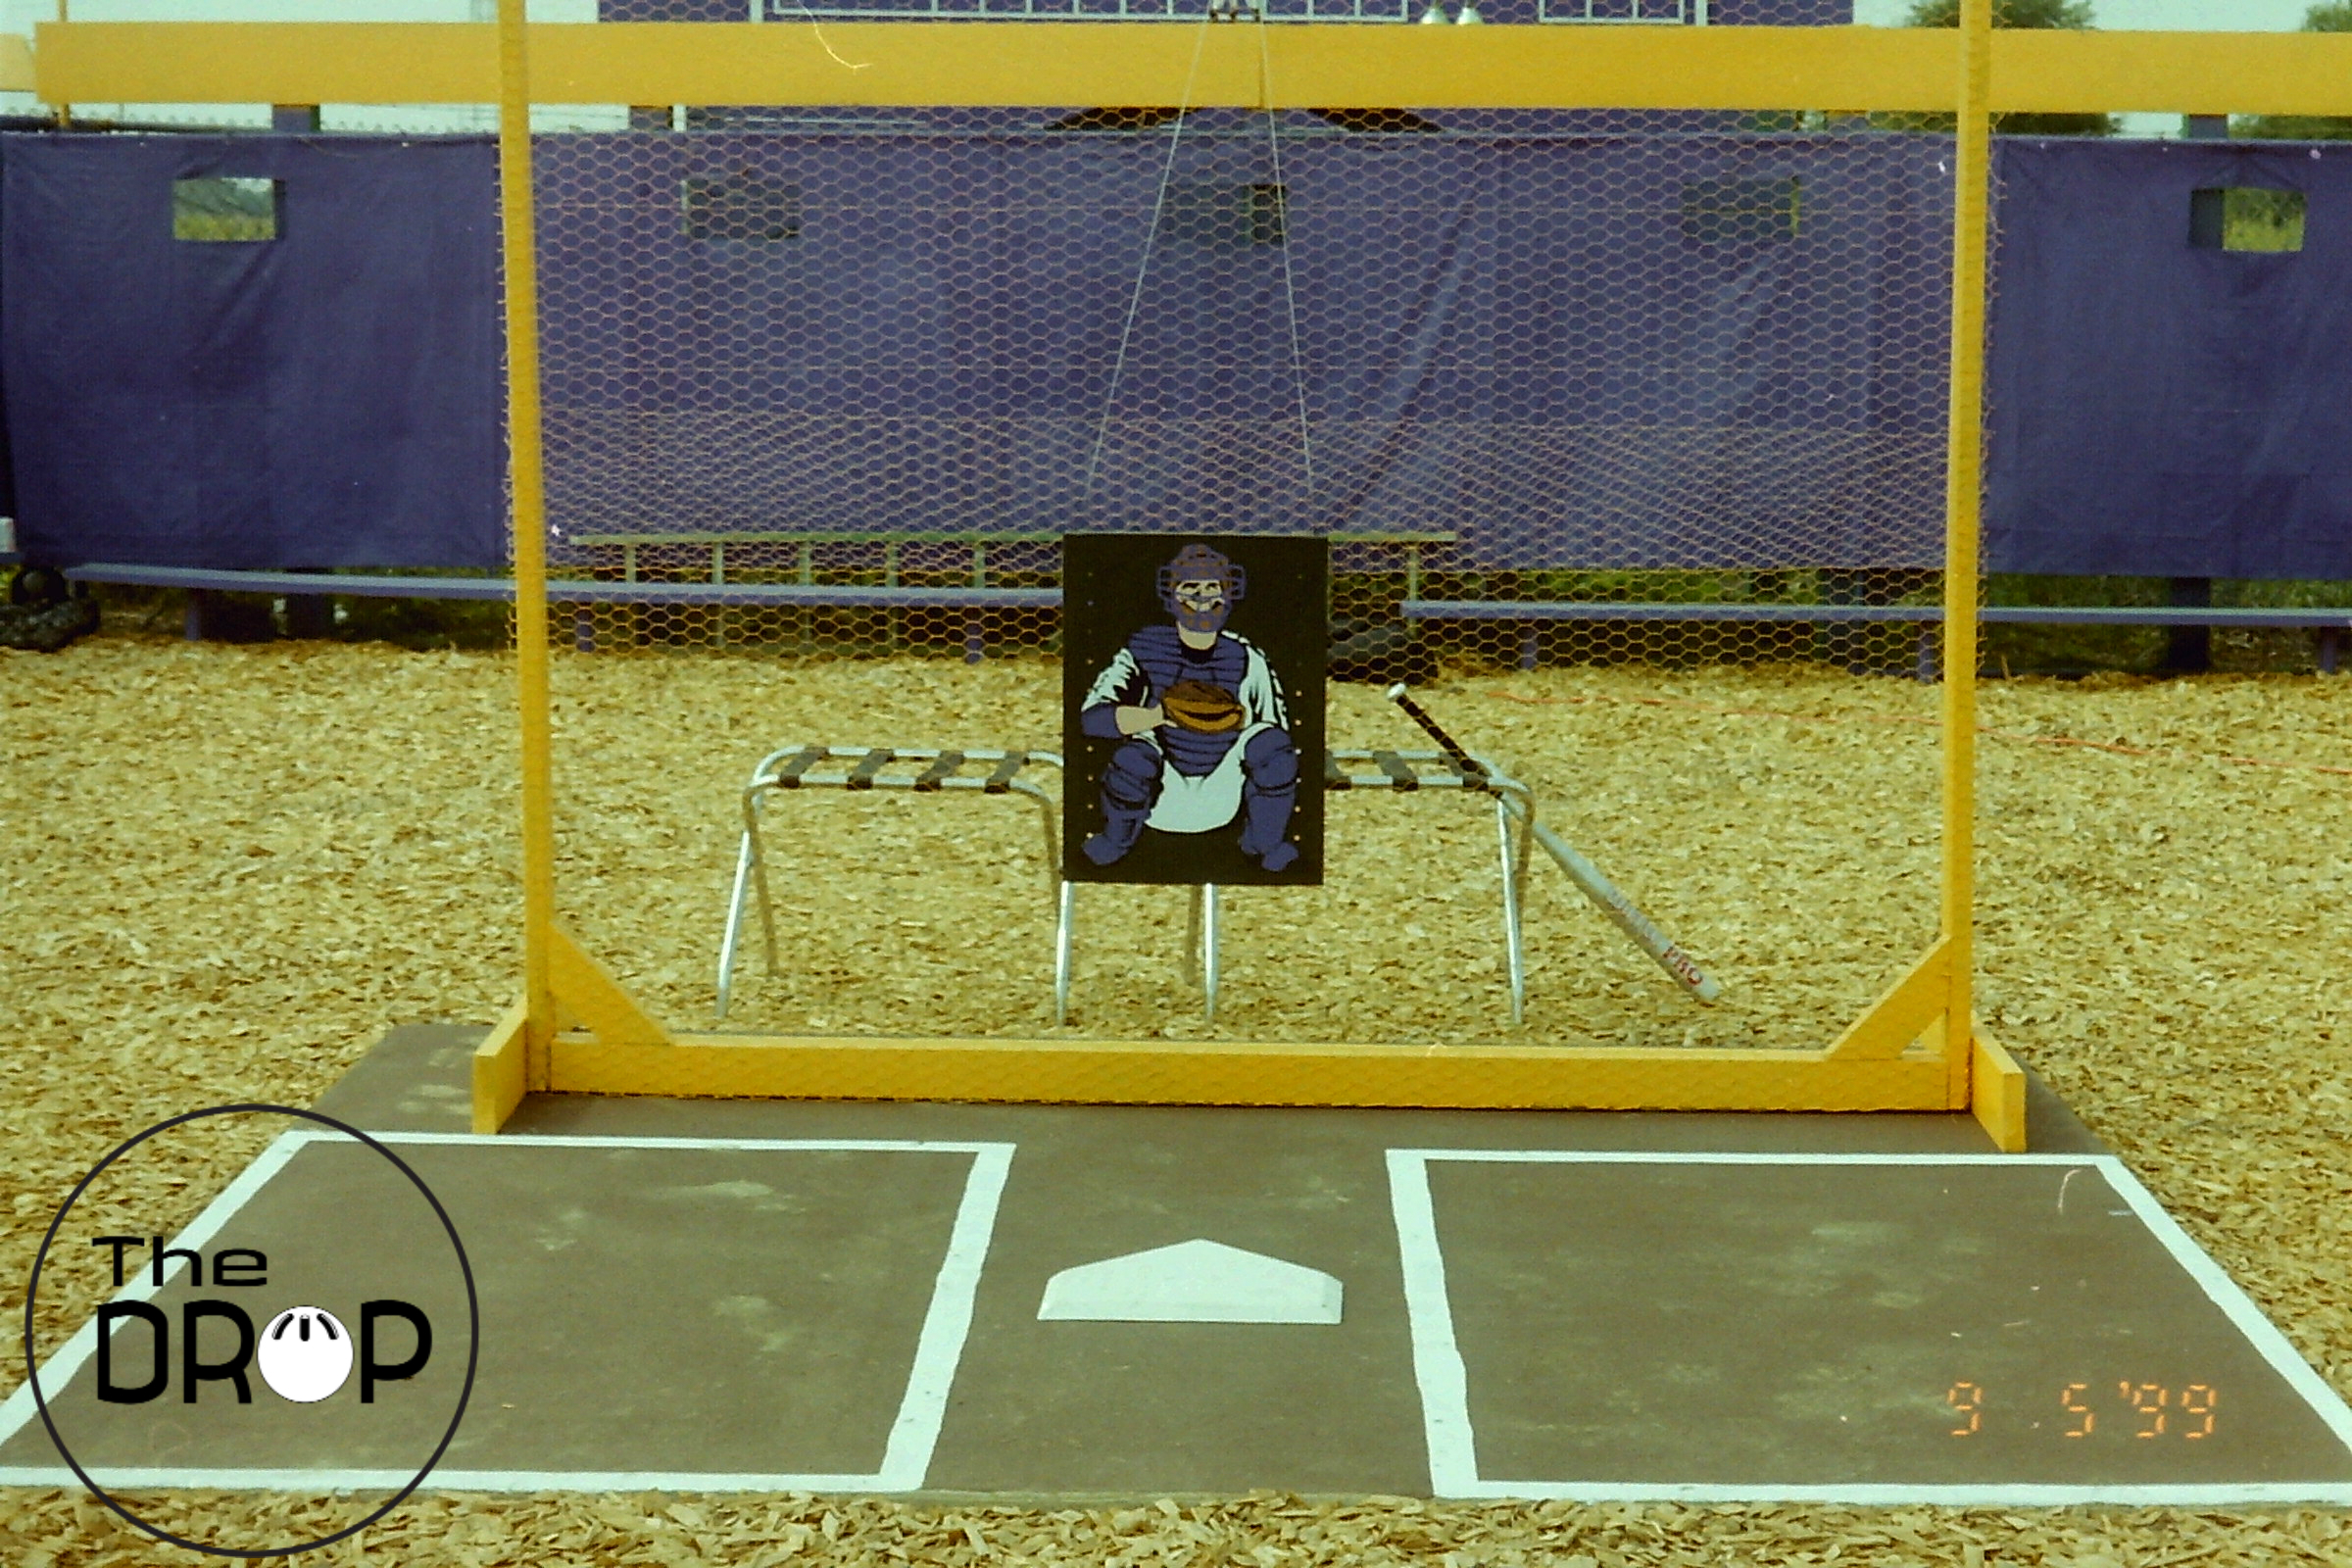 The Johnny strike zone - shown hanging from the backstop at famed Lakeside Park in the fall of 1999 - was the forefather of the current target strike zones that are so prevalent in today's game.